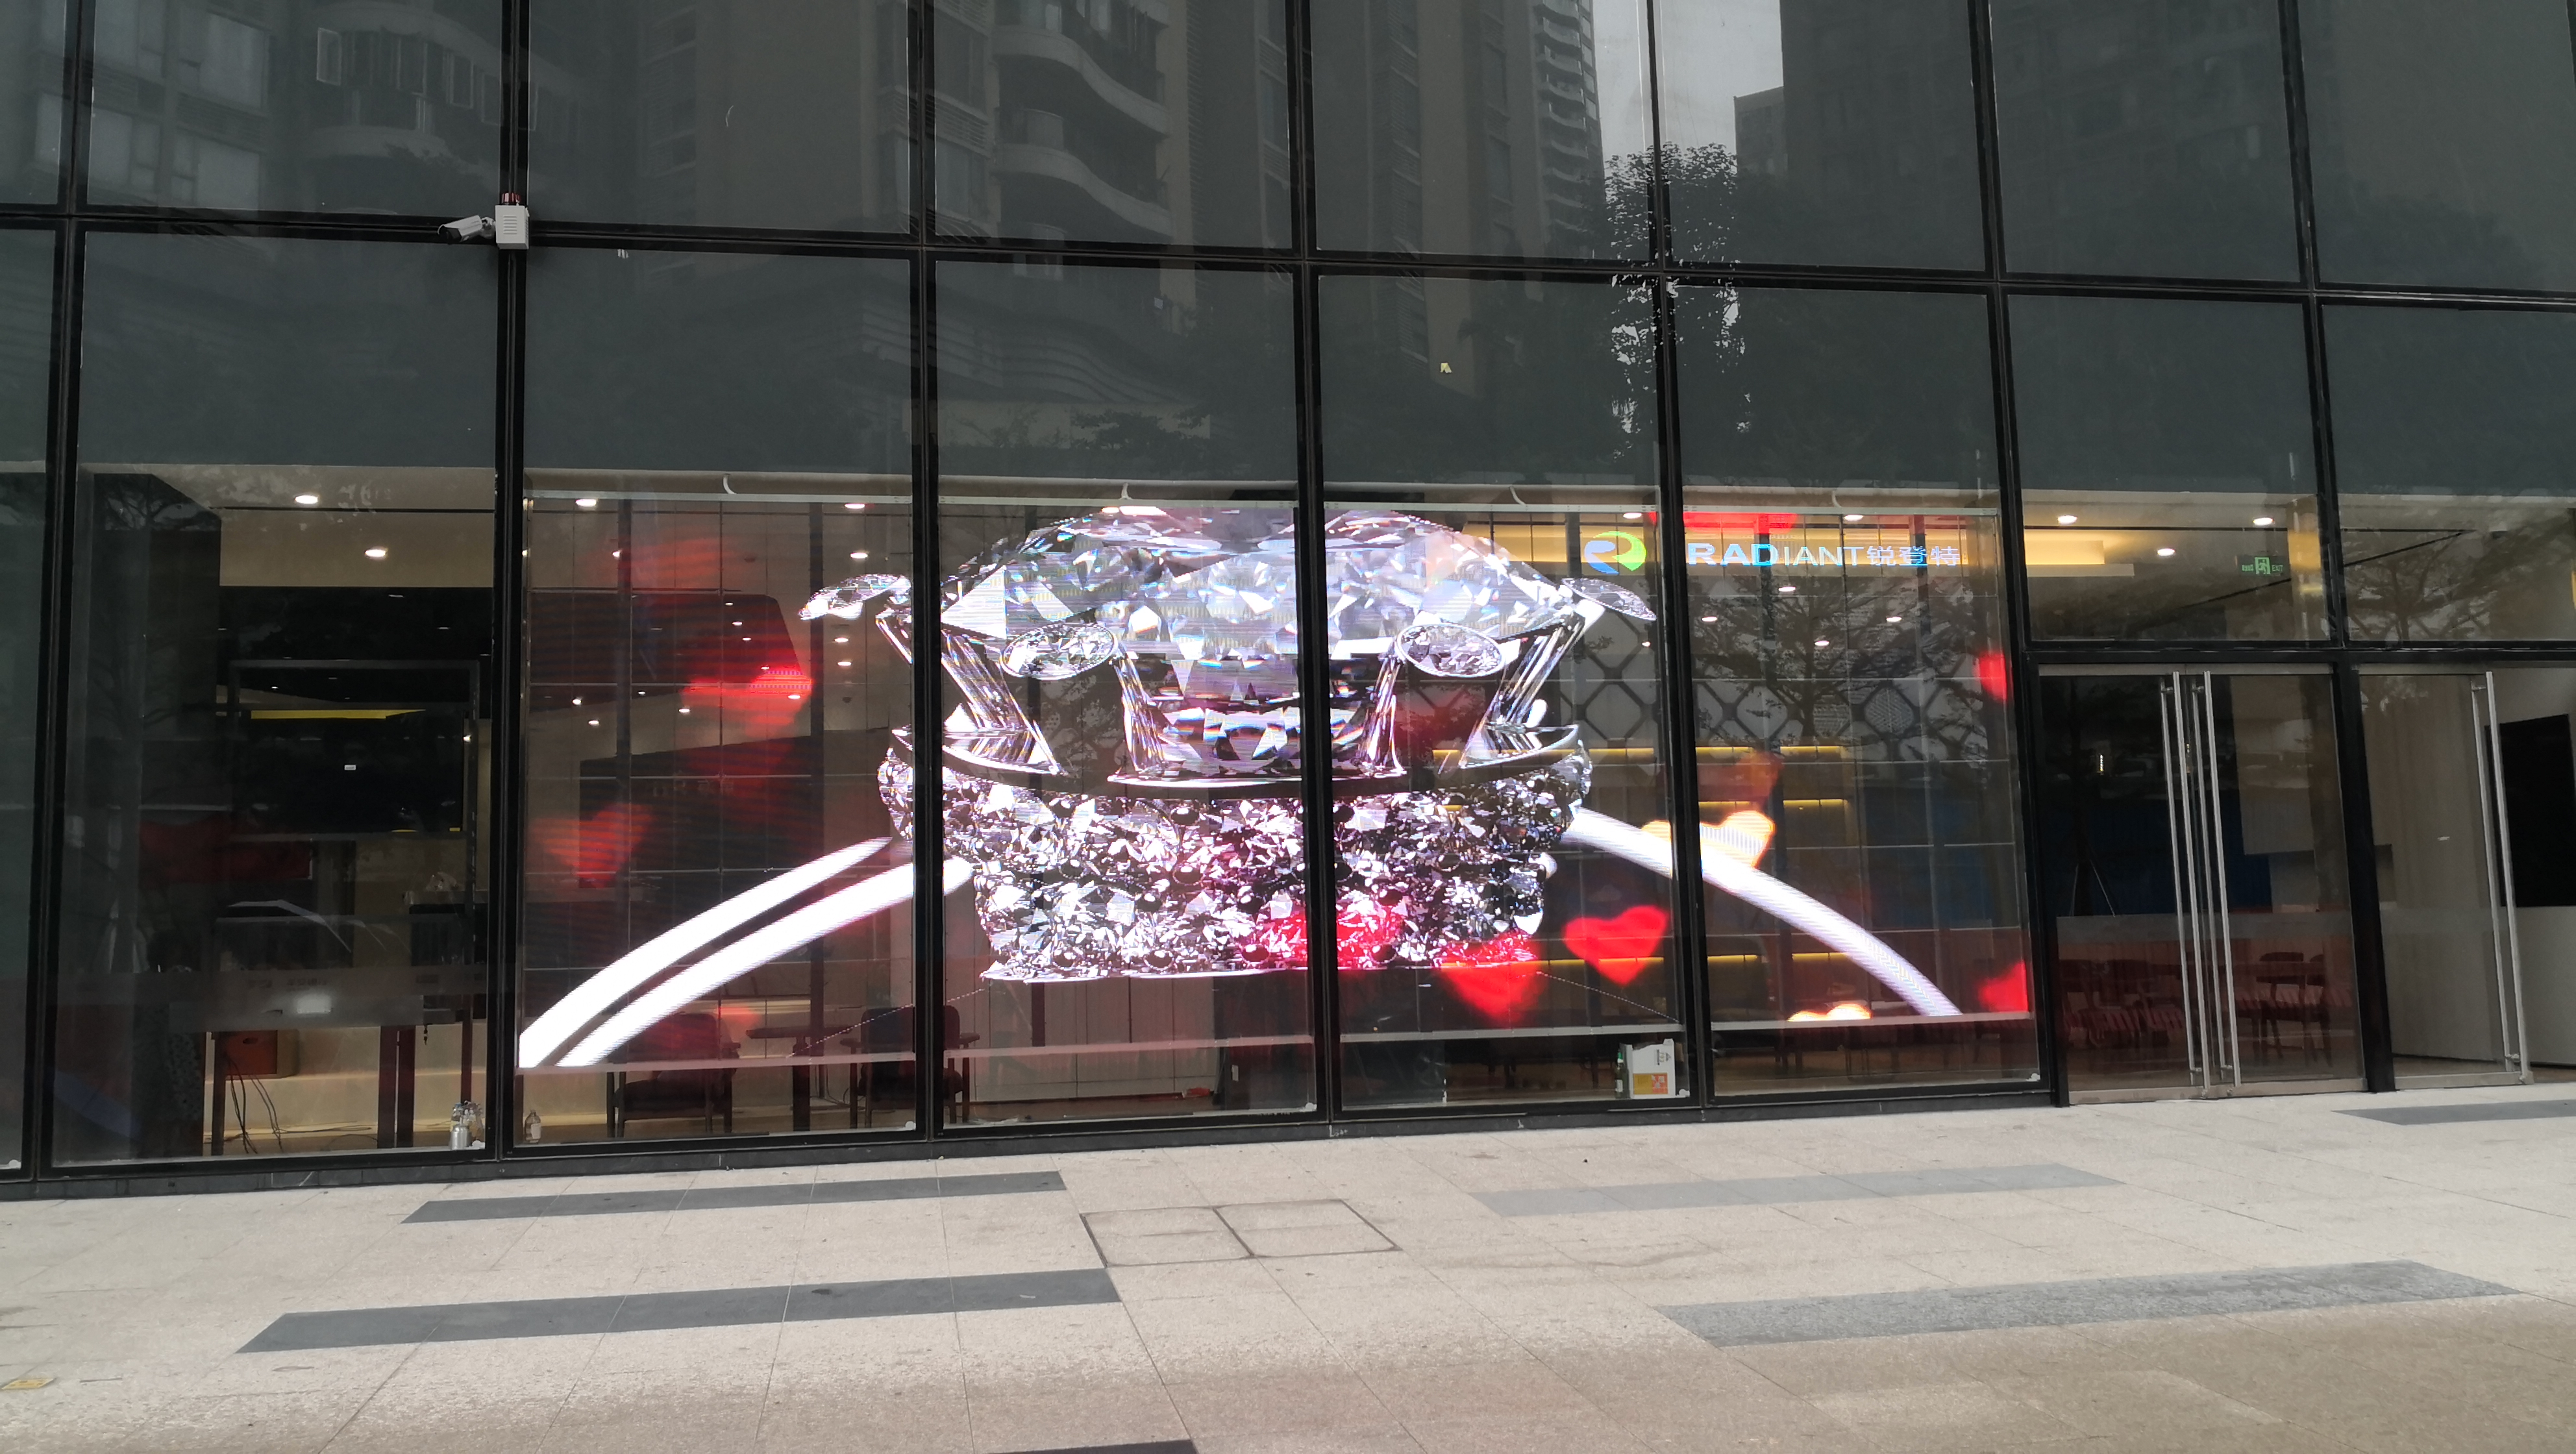 https://www.szradiant.com/products/transparent-led-screen/